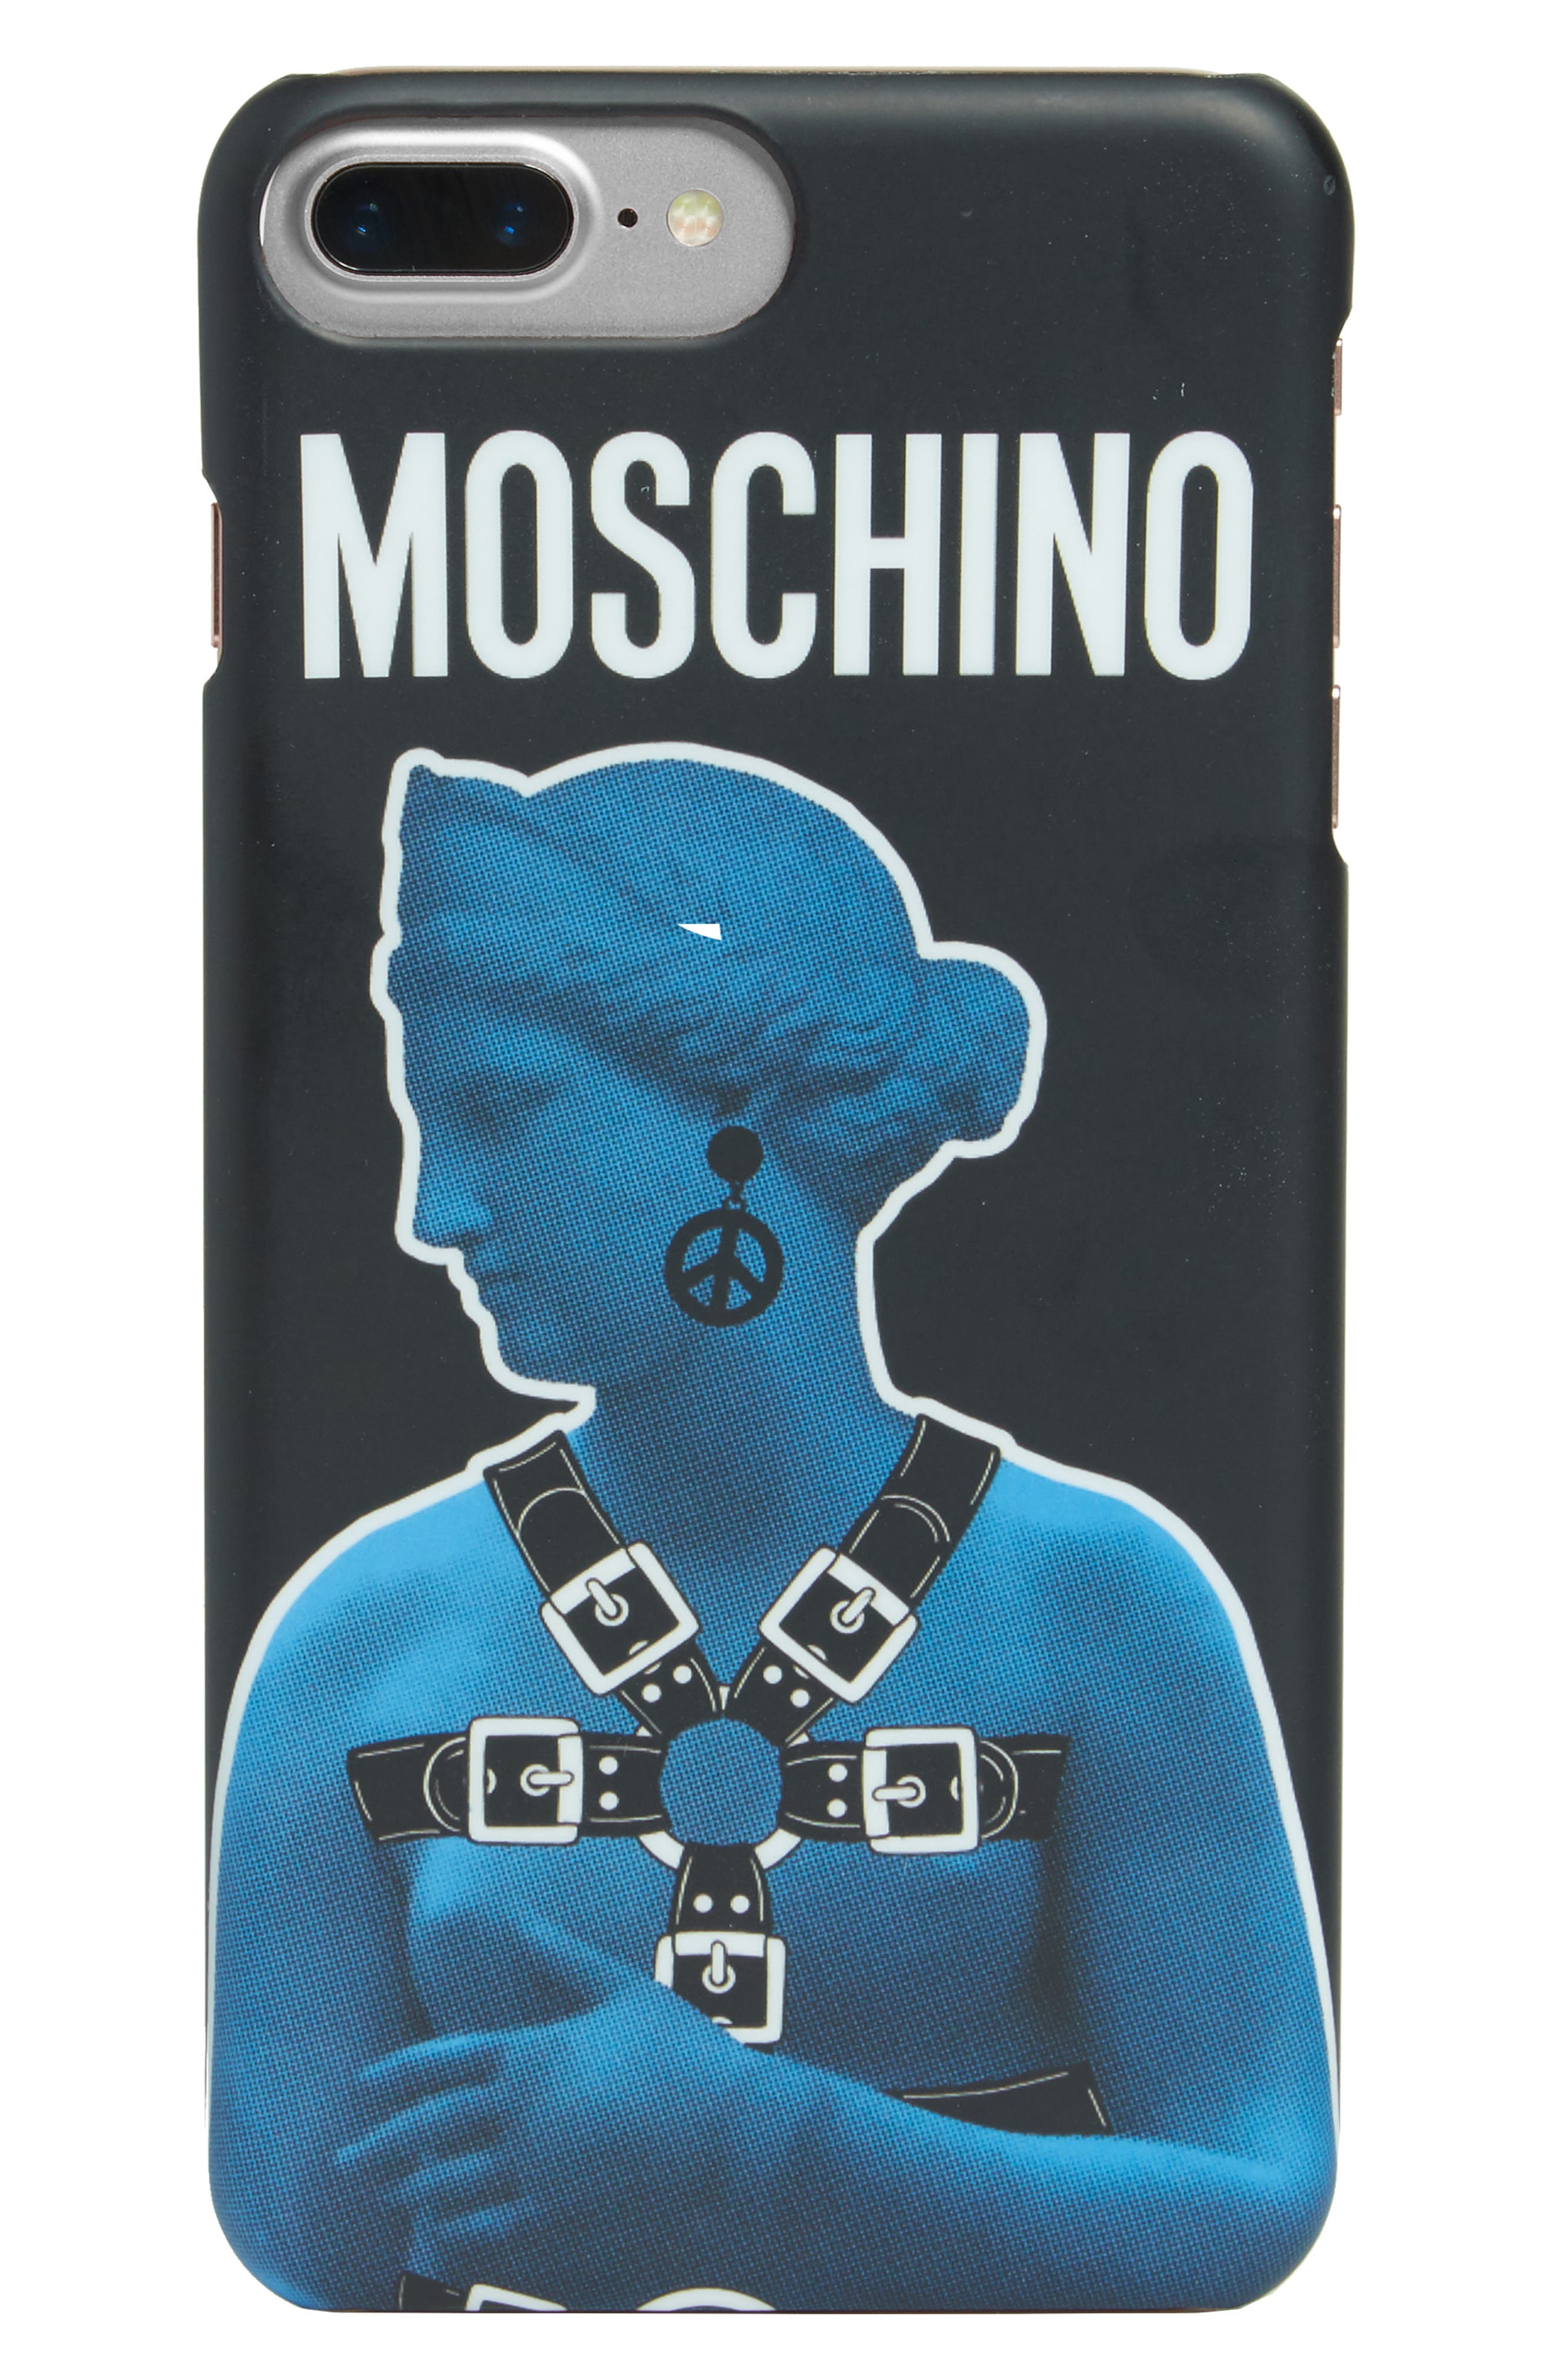 Alternate Image 1 Selected - Moschino Statue Graphic iPhone 6/6s/7 Case